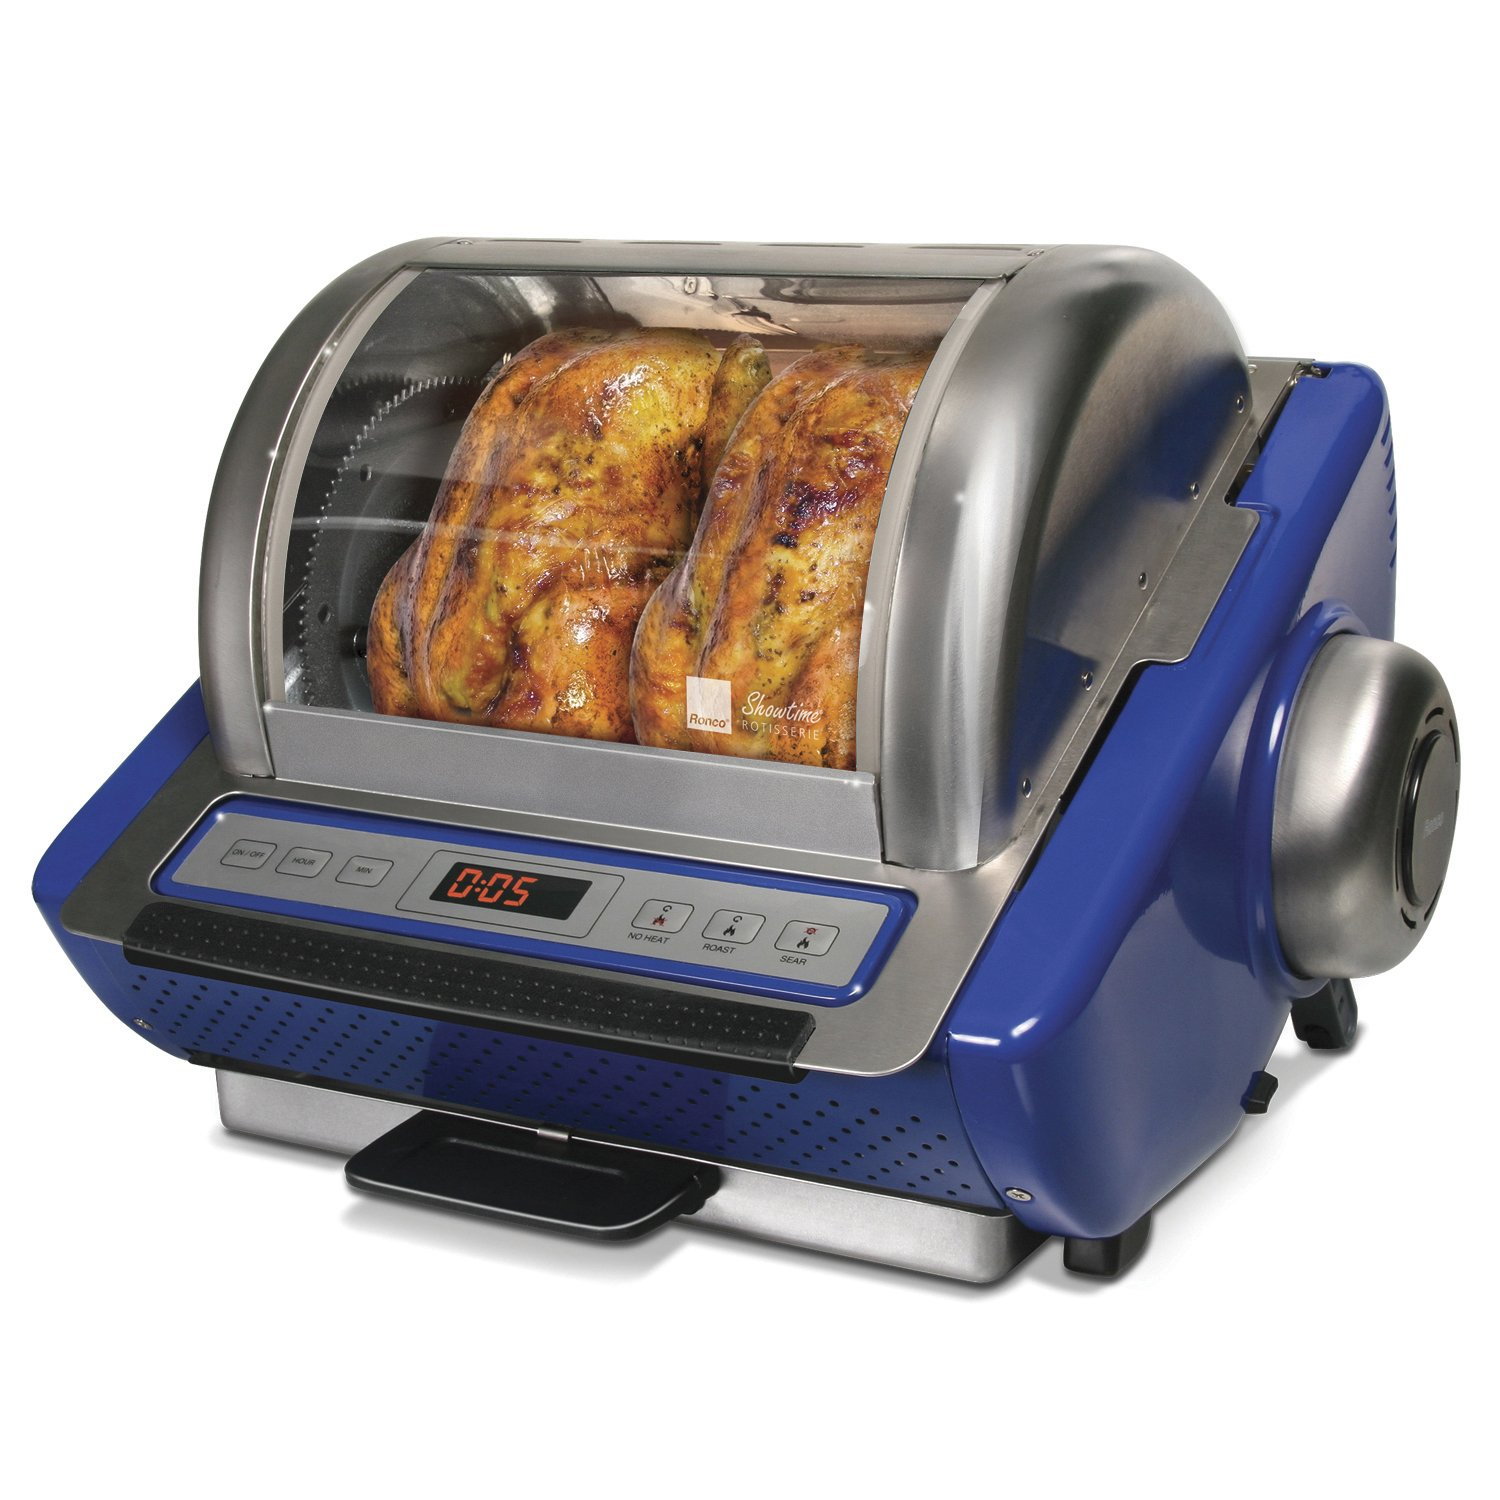 Ronco Digital Showtime Rotisserie and BBQ Oven, Blue